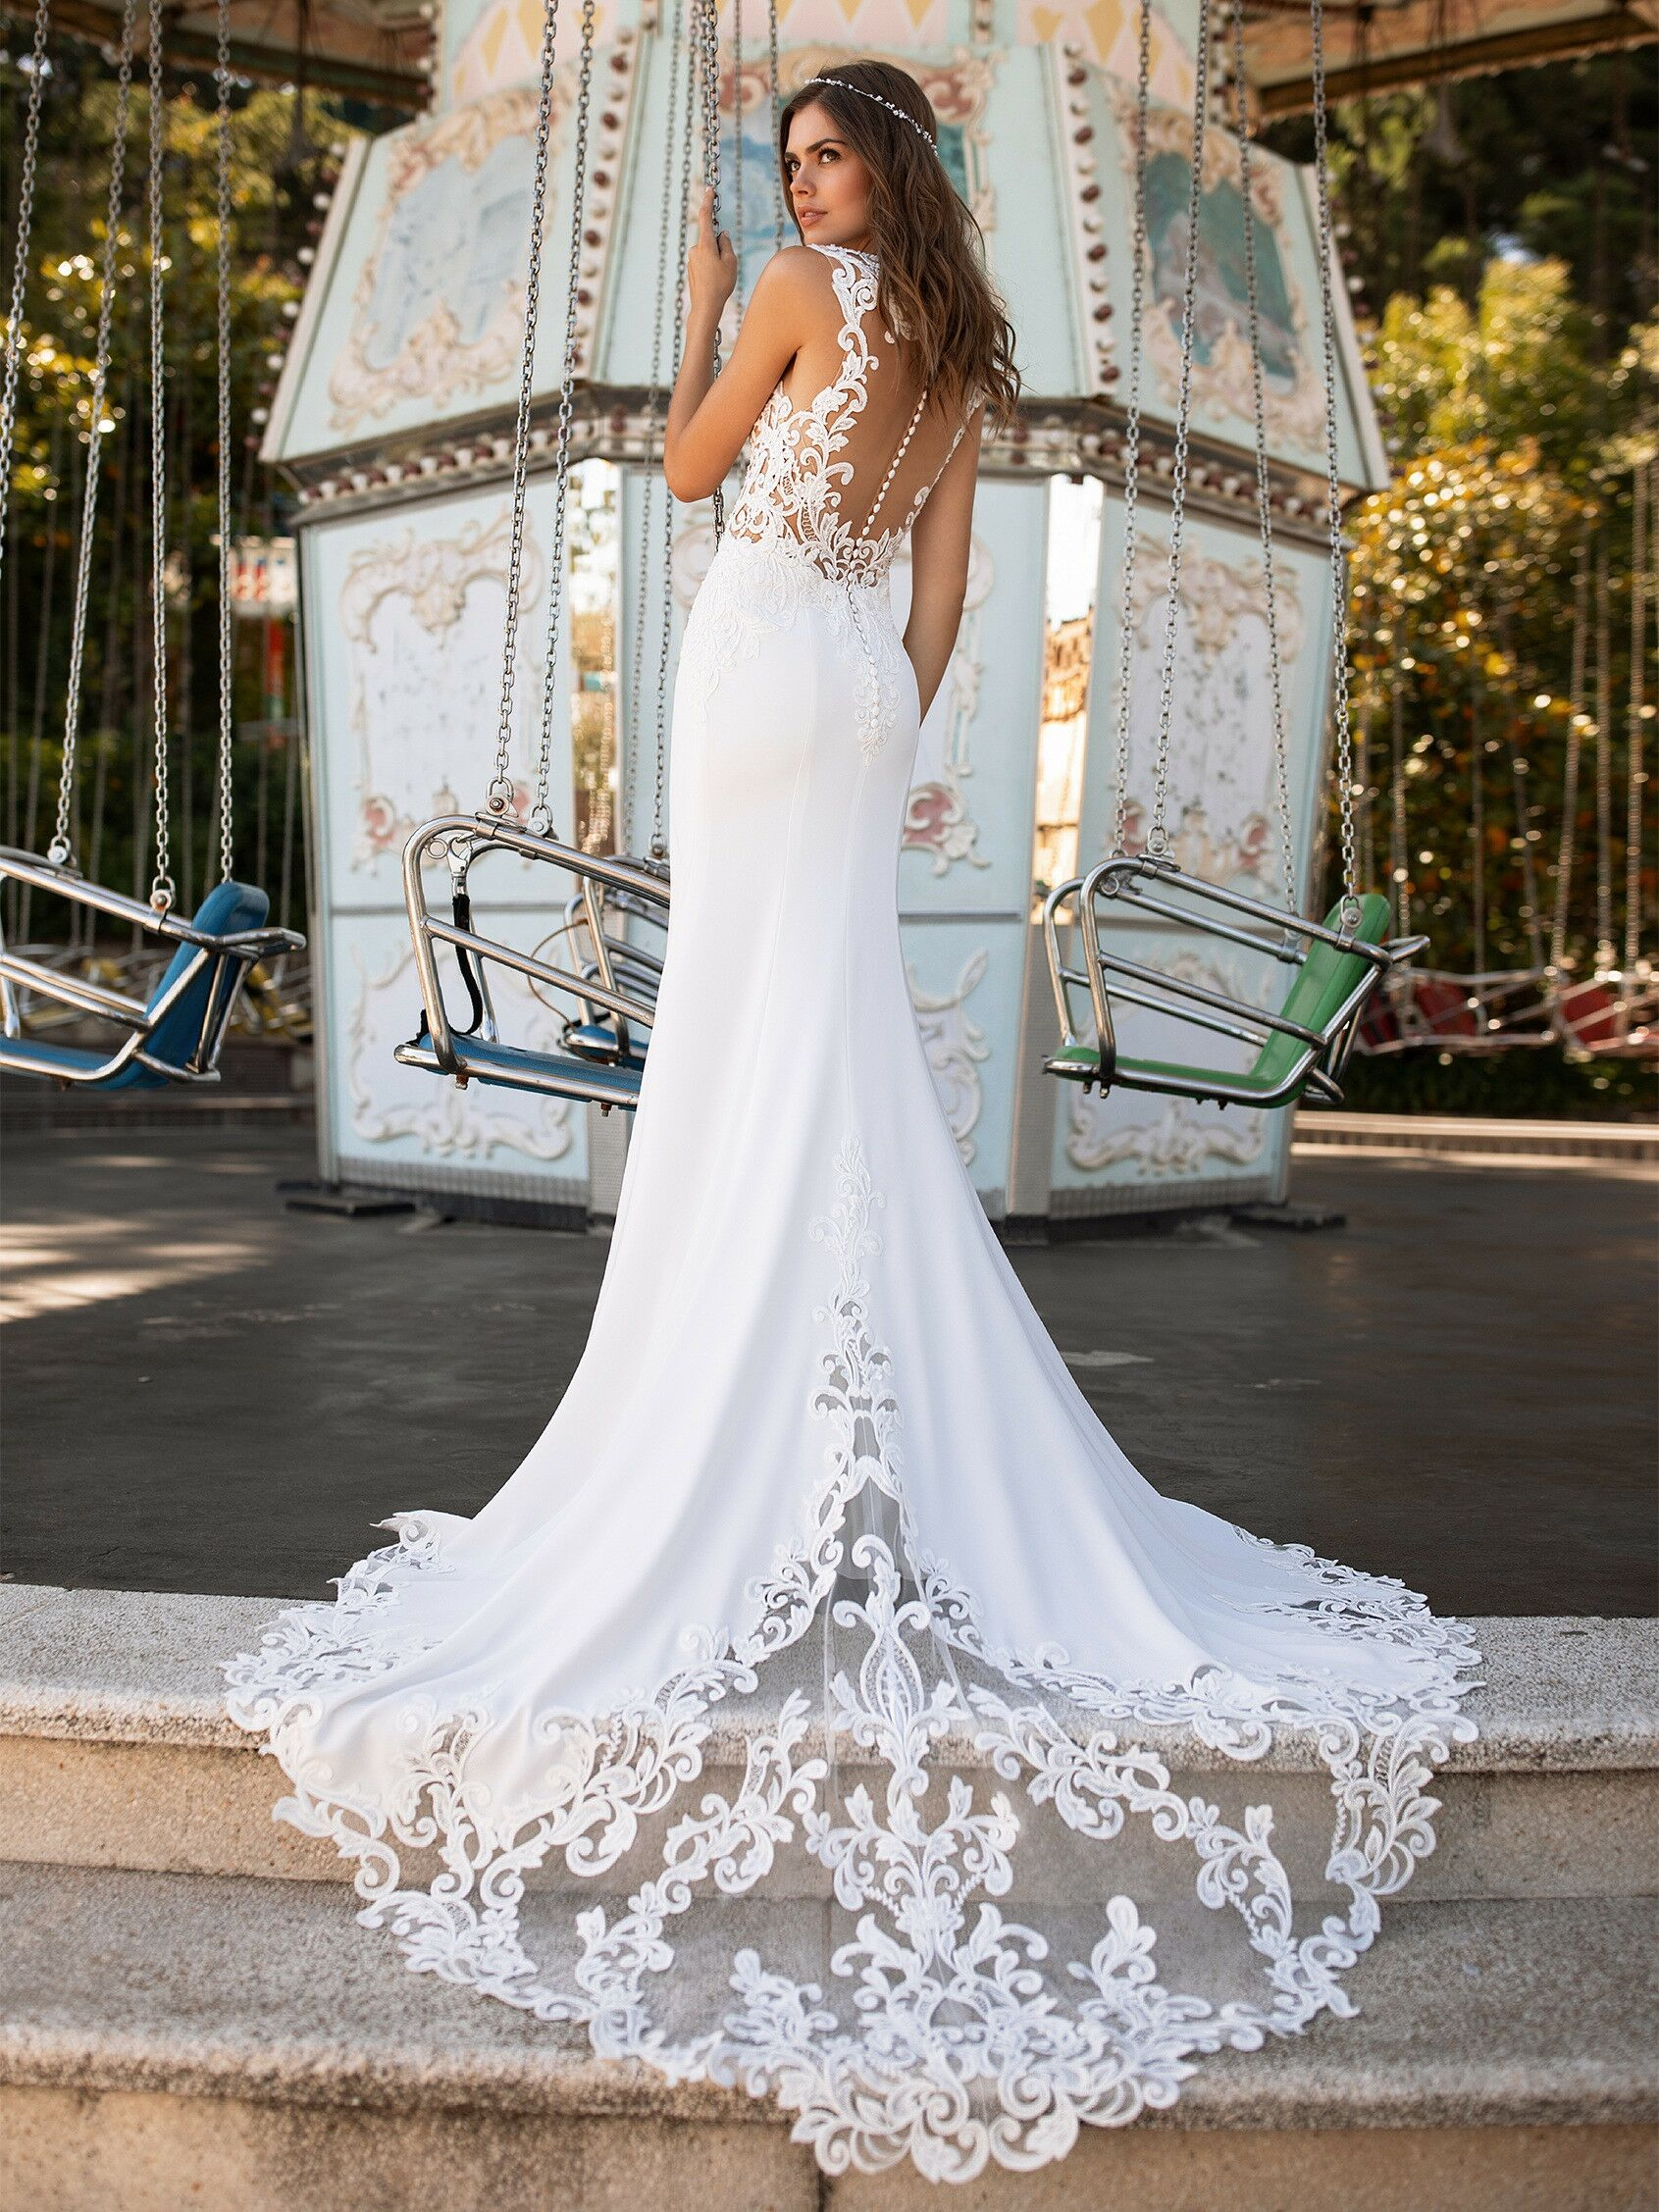 Madison Town and Country Bridal Shop   Bridal Salons   The Knot